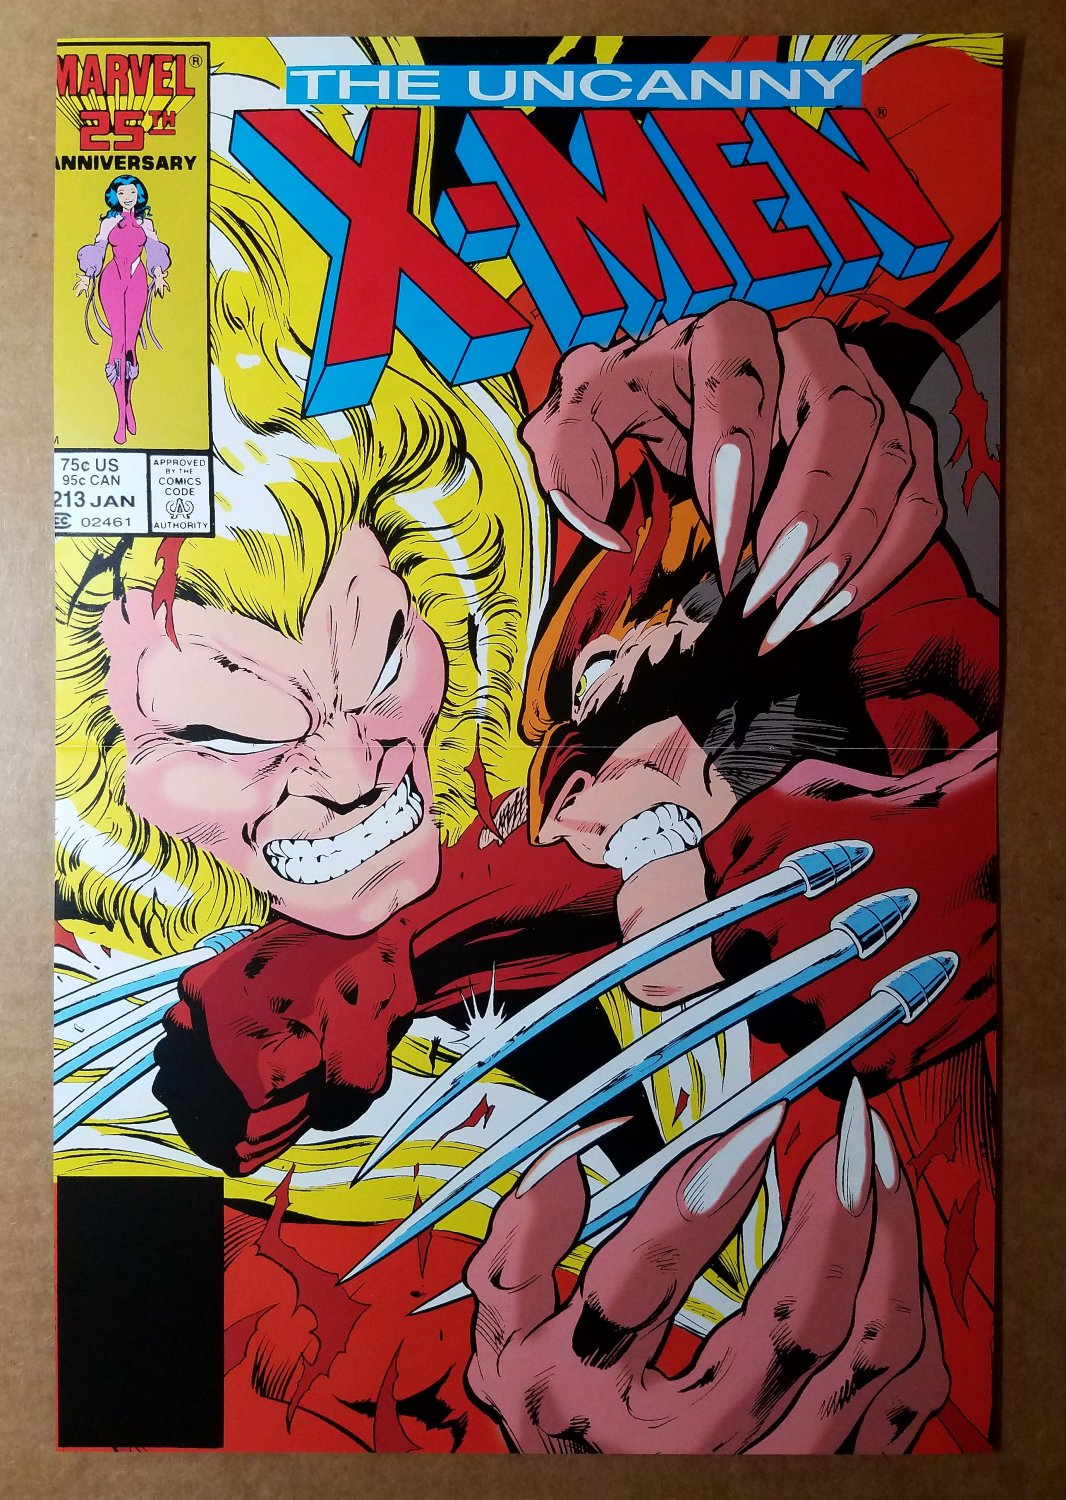 Uncanny X-Men 213 Wolverine Vs Sabretooth Marvel Comics Poster by Alan Davis